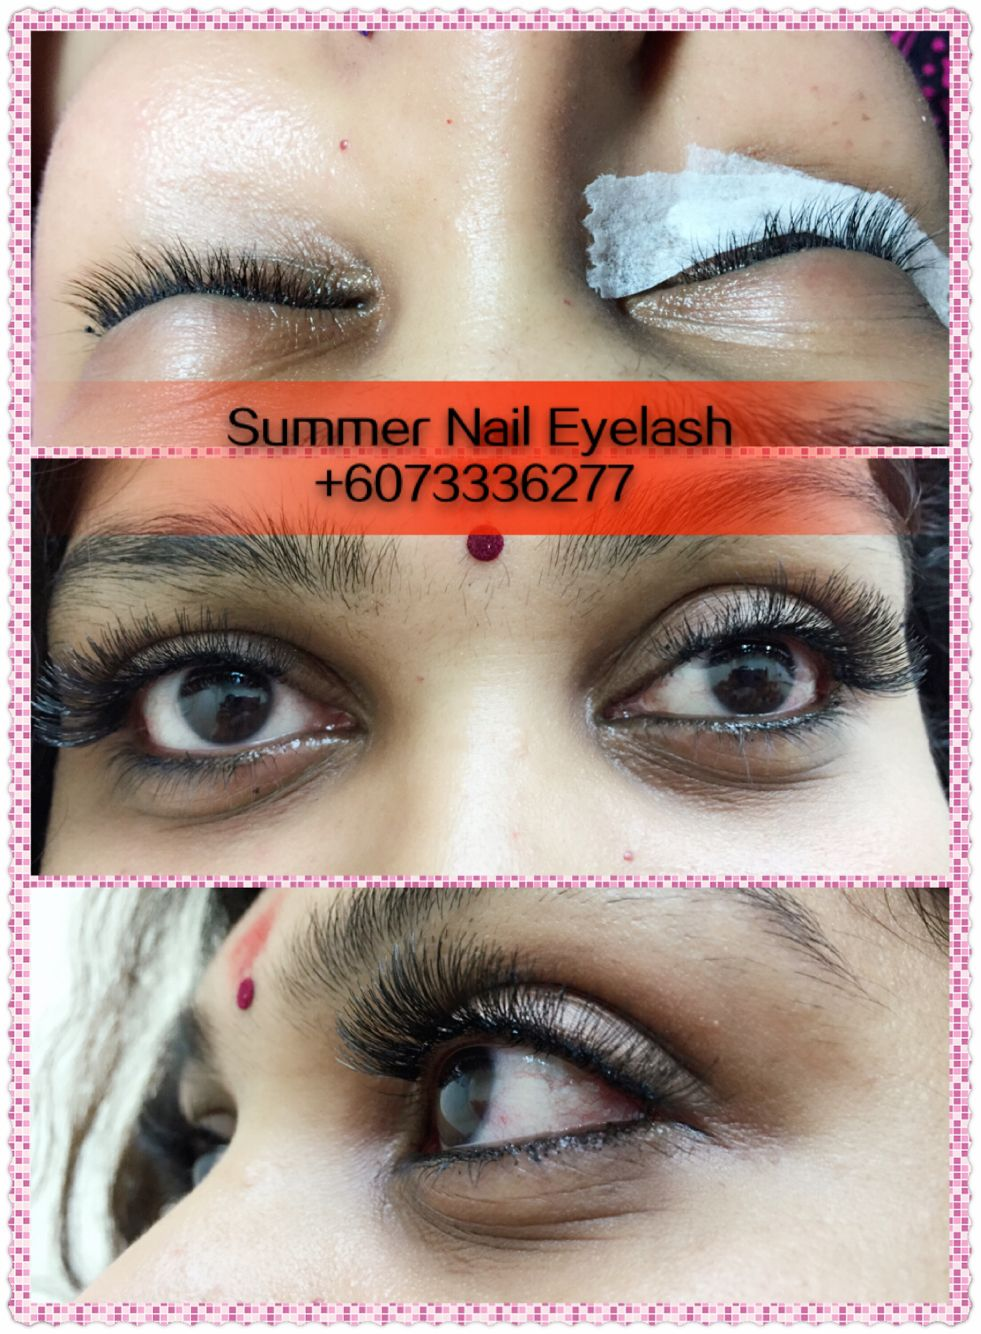 bdcbbba6801 New Eyelash Extension in the house now.. Enjoy 30% discount off, promotion  period for limited time only! (Appointment based) Summer Nail, Holiday  Plaza ...